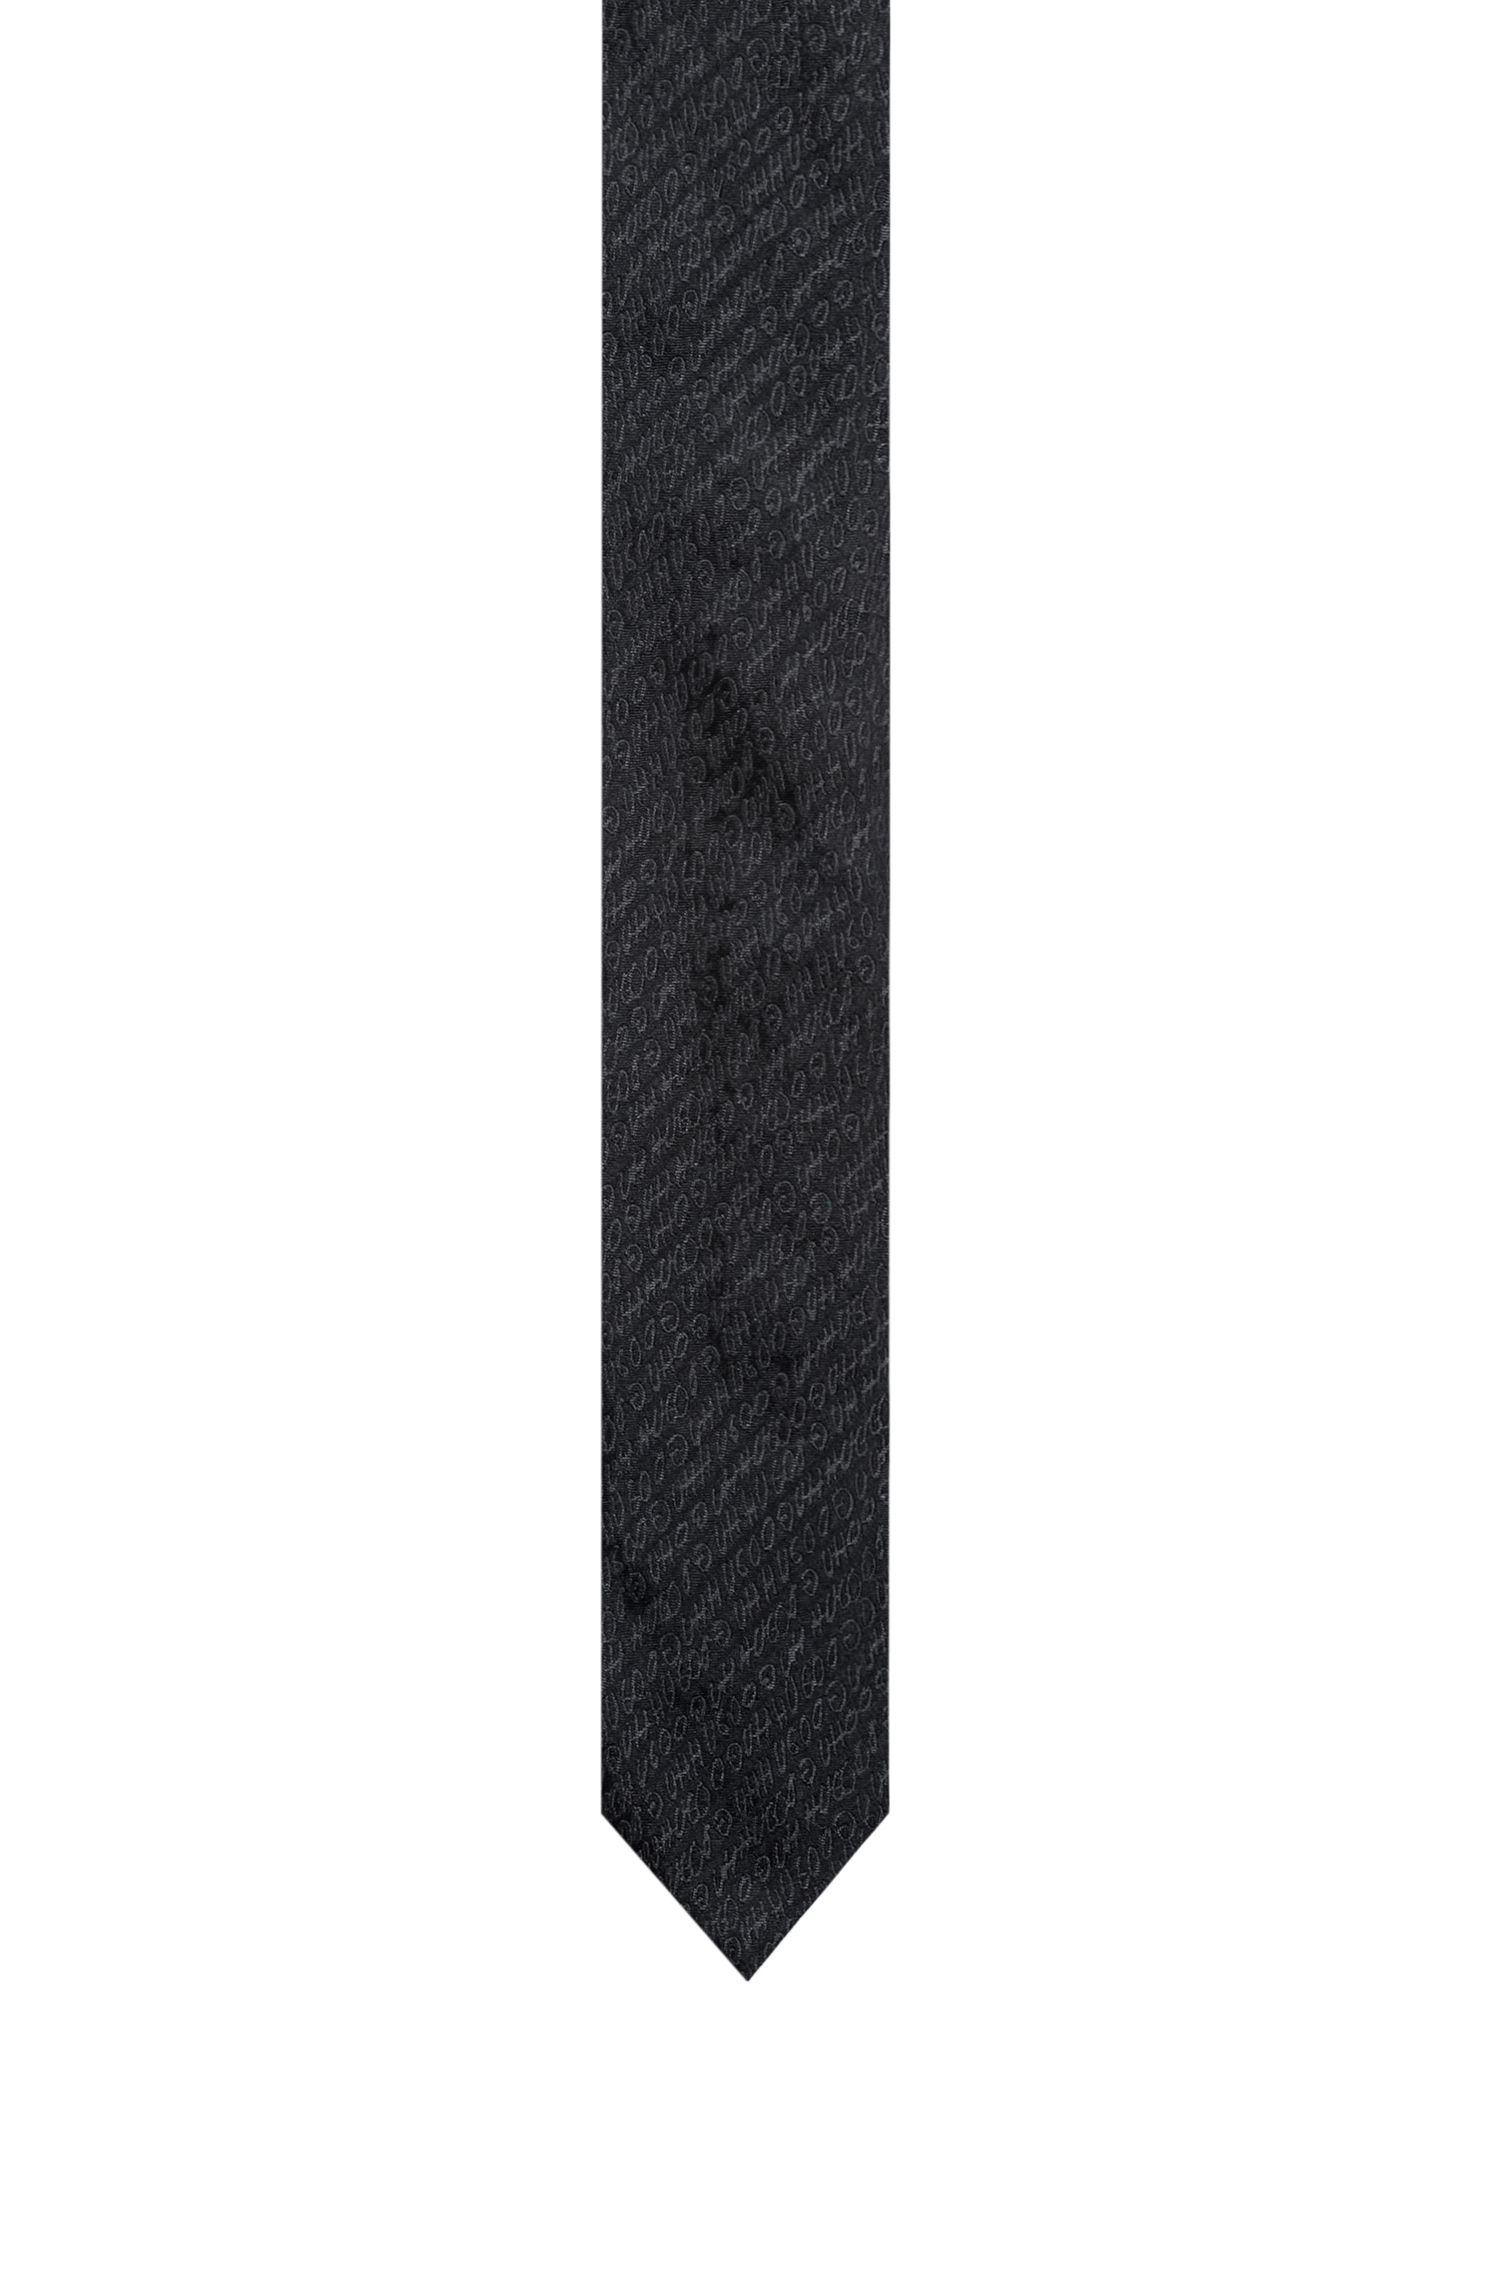 Logo-patterned tie in silk jacquard